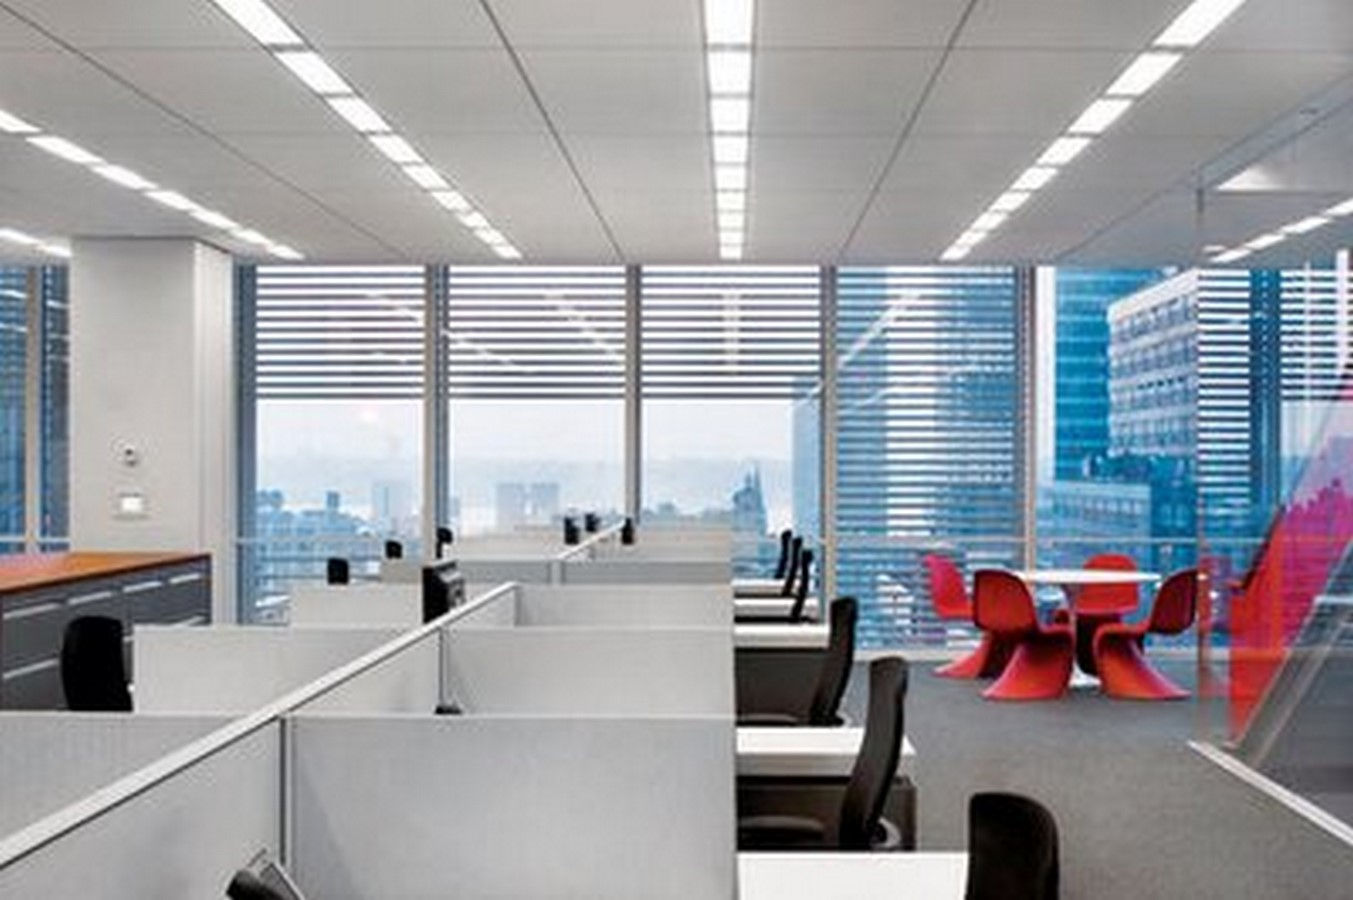 The New York Times Building by Renzo Piano: Inspired by the culture of transparency - Sheet5